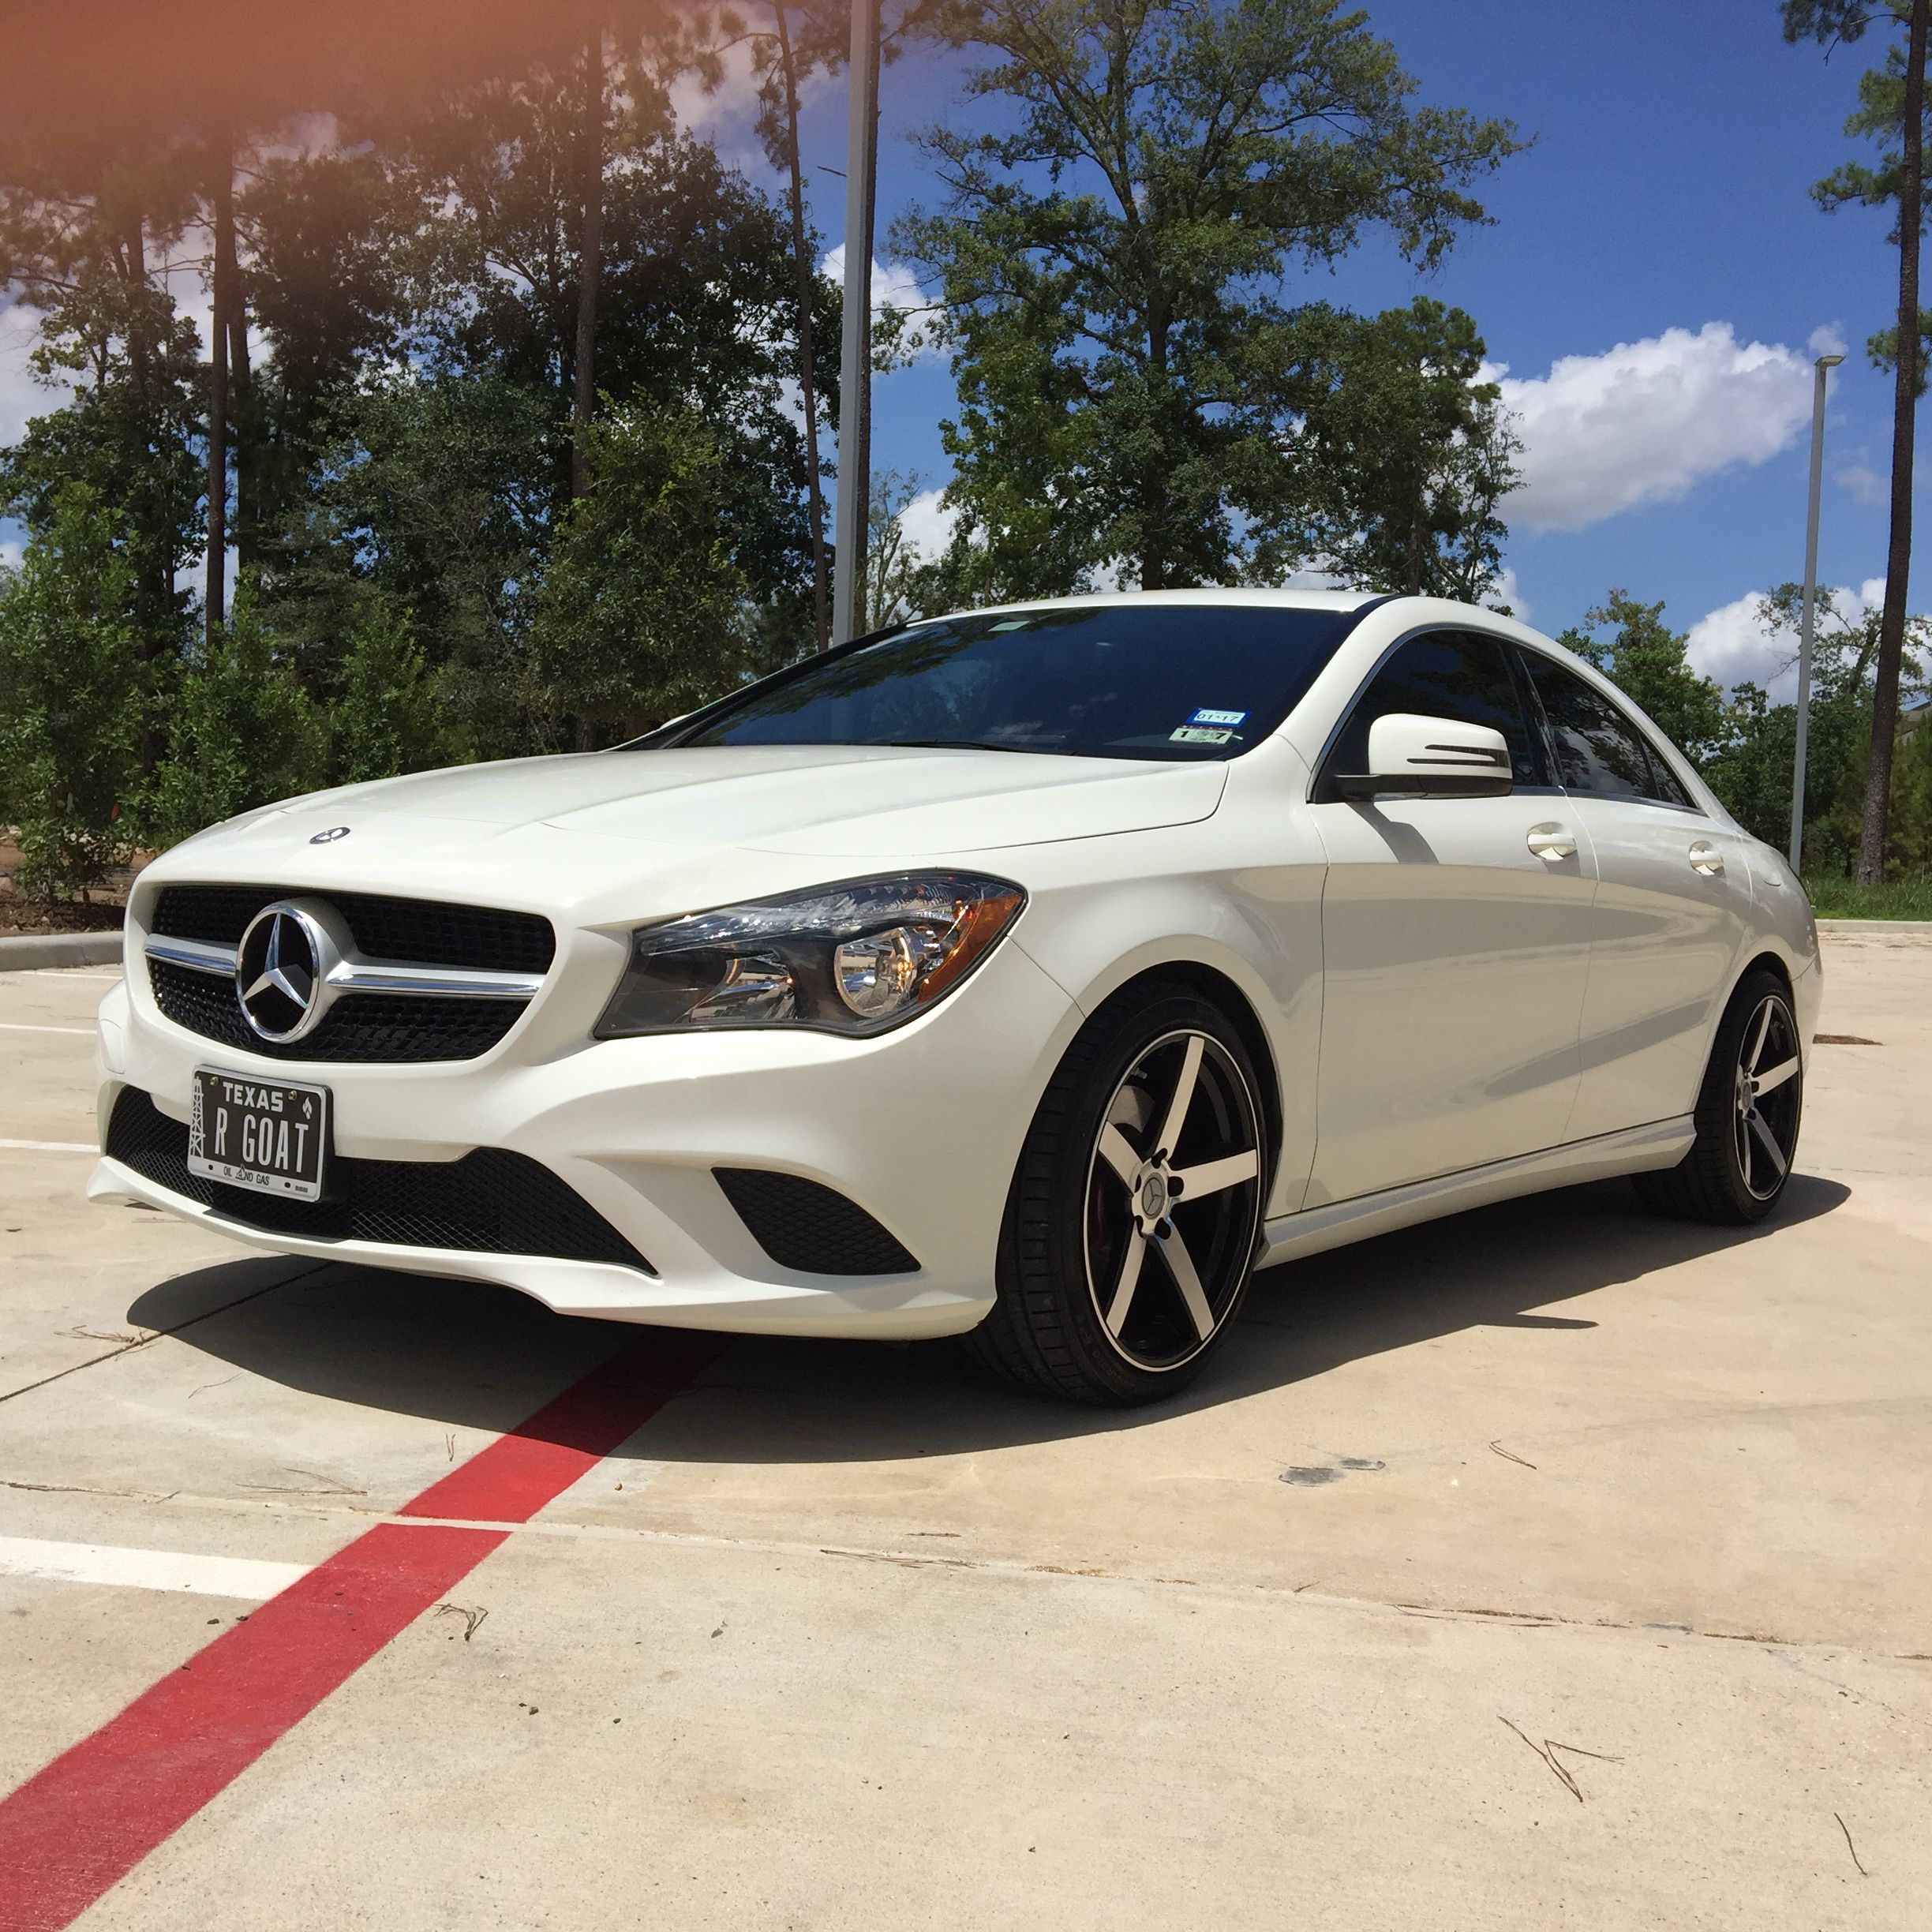 Pin By Saidiwaziri On Merce Benz Mercedes Cla 250 Mercedes Benz